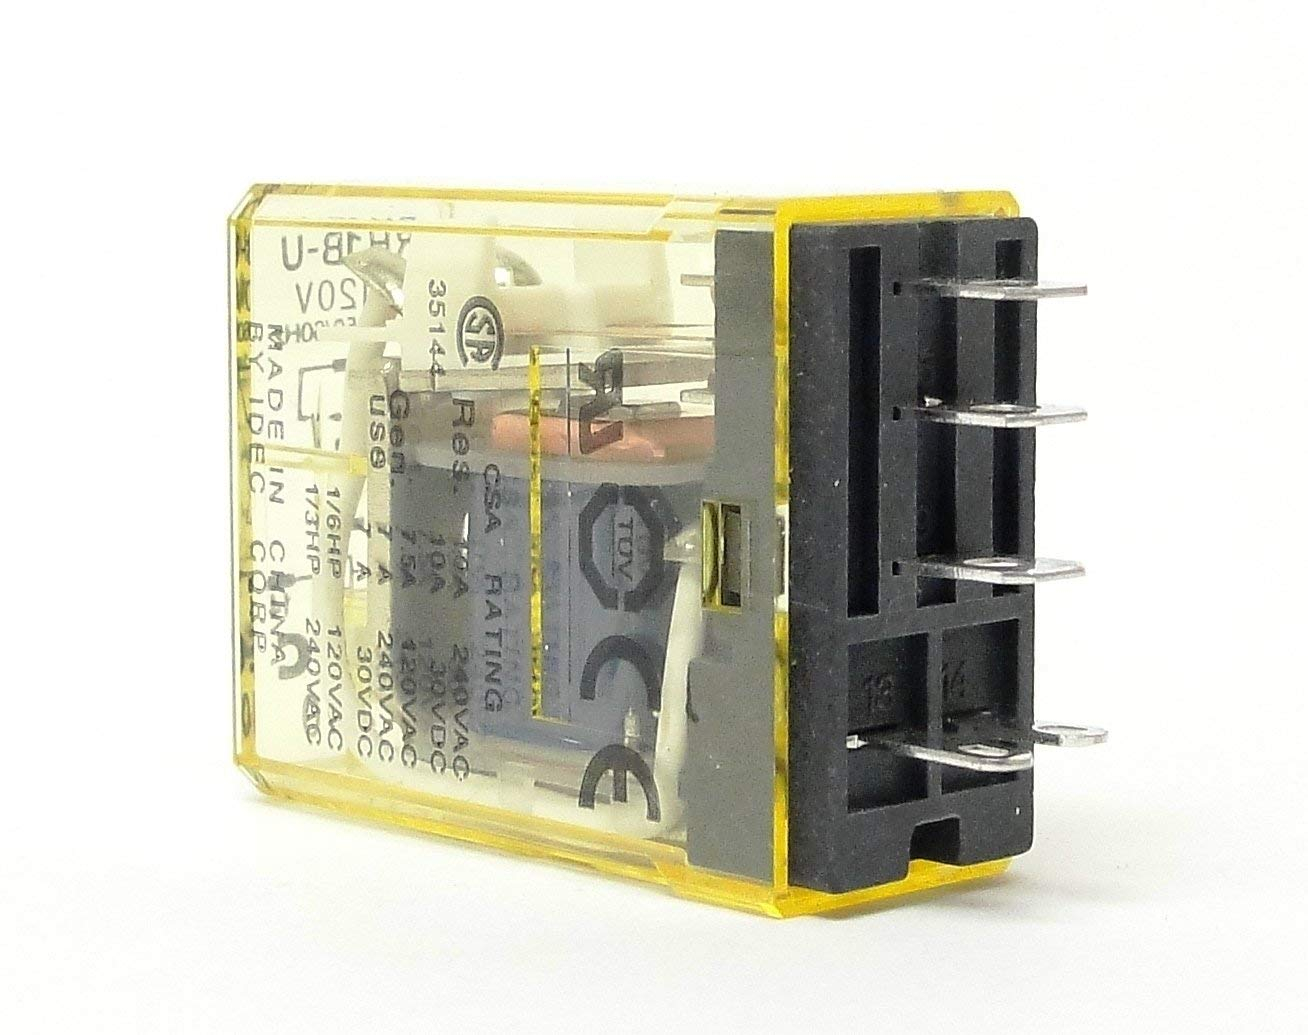 hight resolution of idec sh1b 05 wiring diagram idec rh1b uac120v power relay spdt 120vac 10a plug in